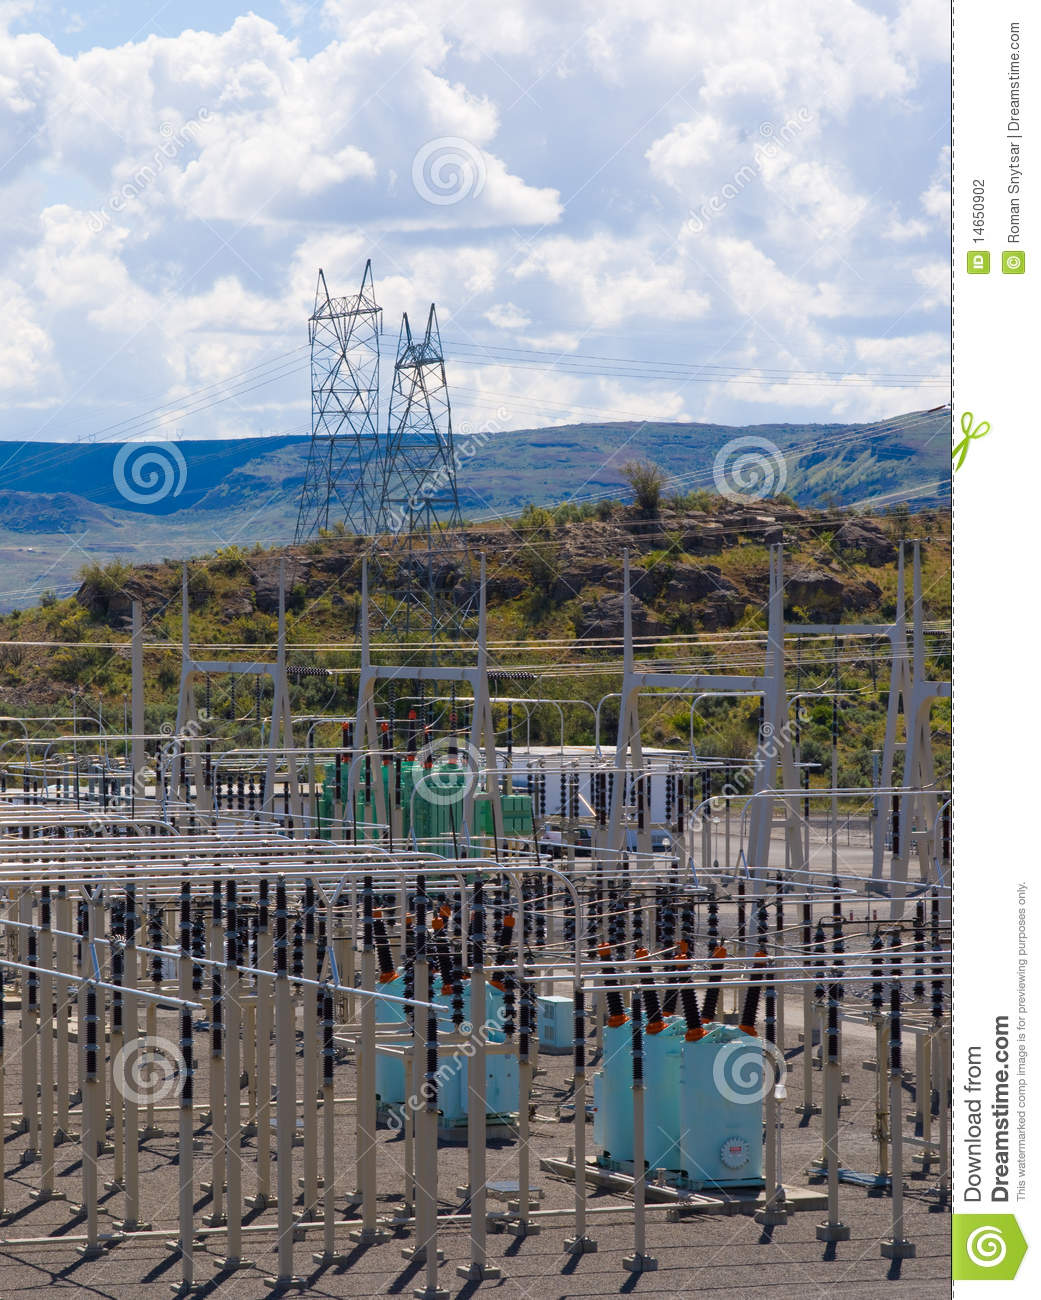 Power distribution substation stock photography image for Distribution substation